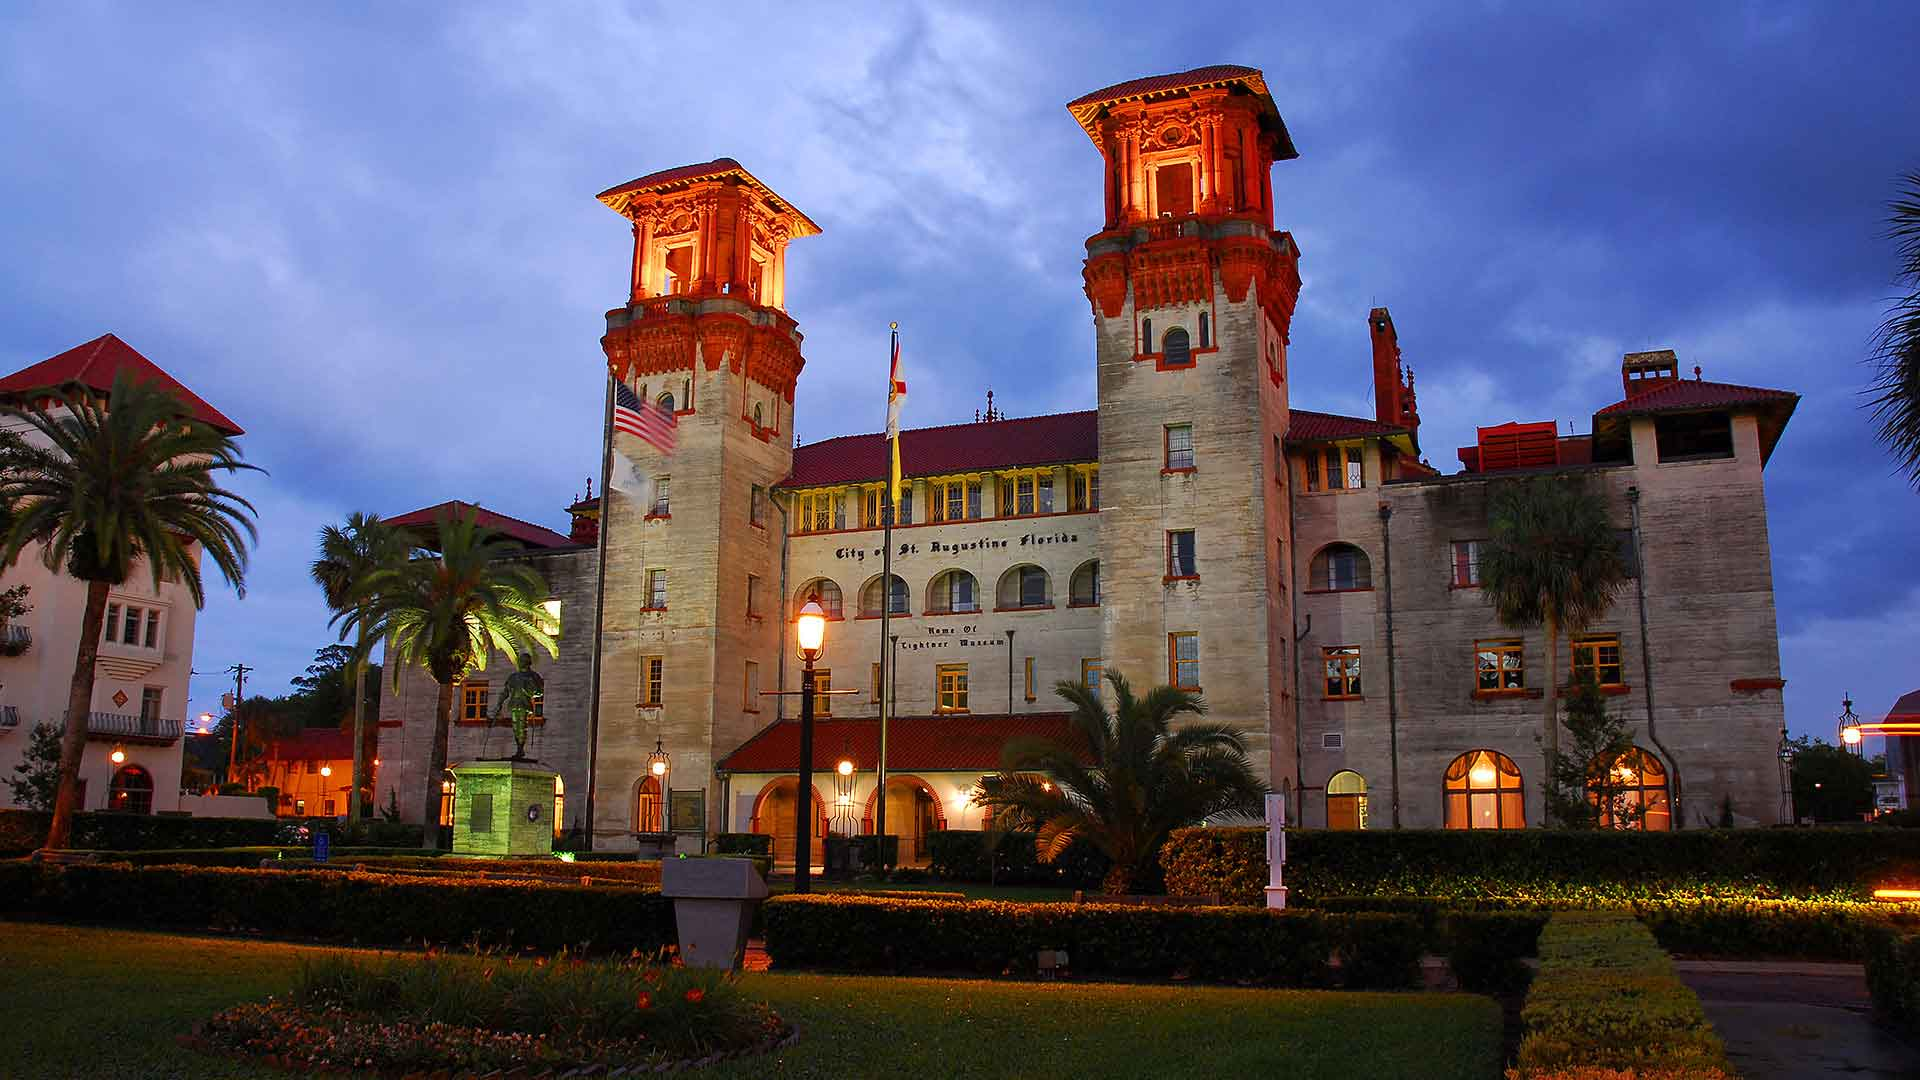 st augustine lightner museum at night